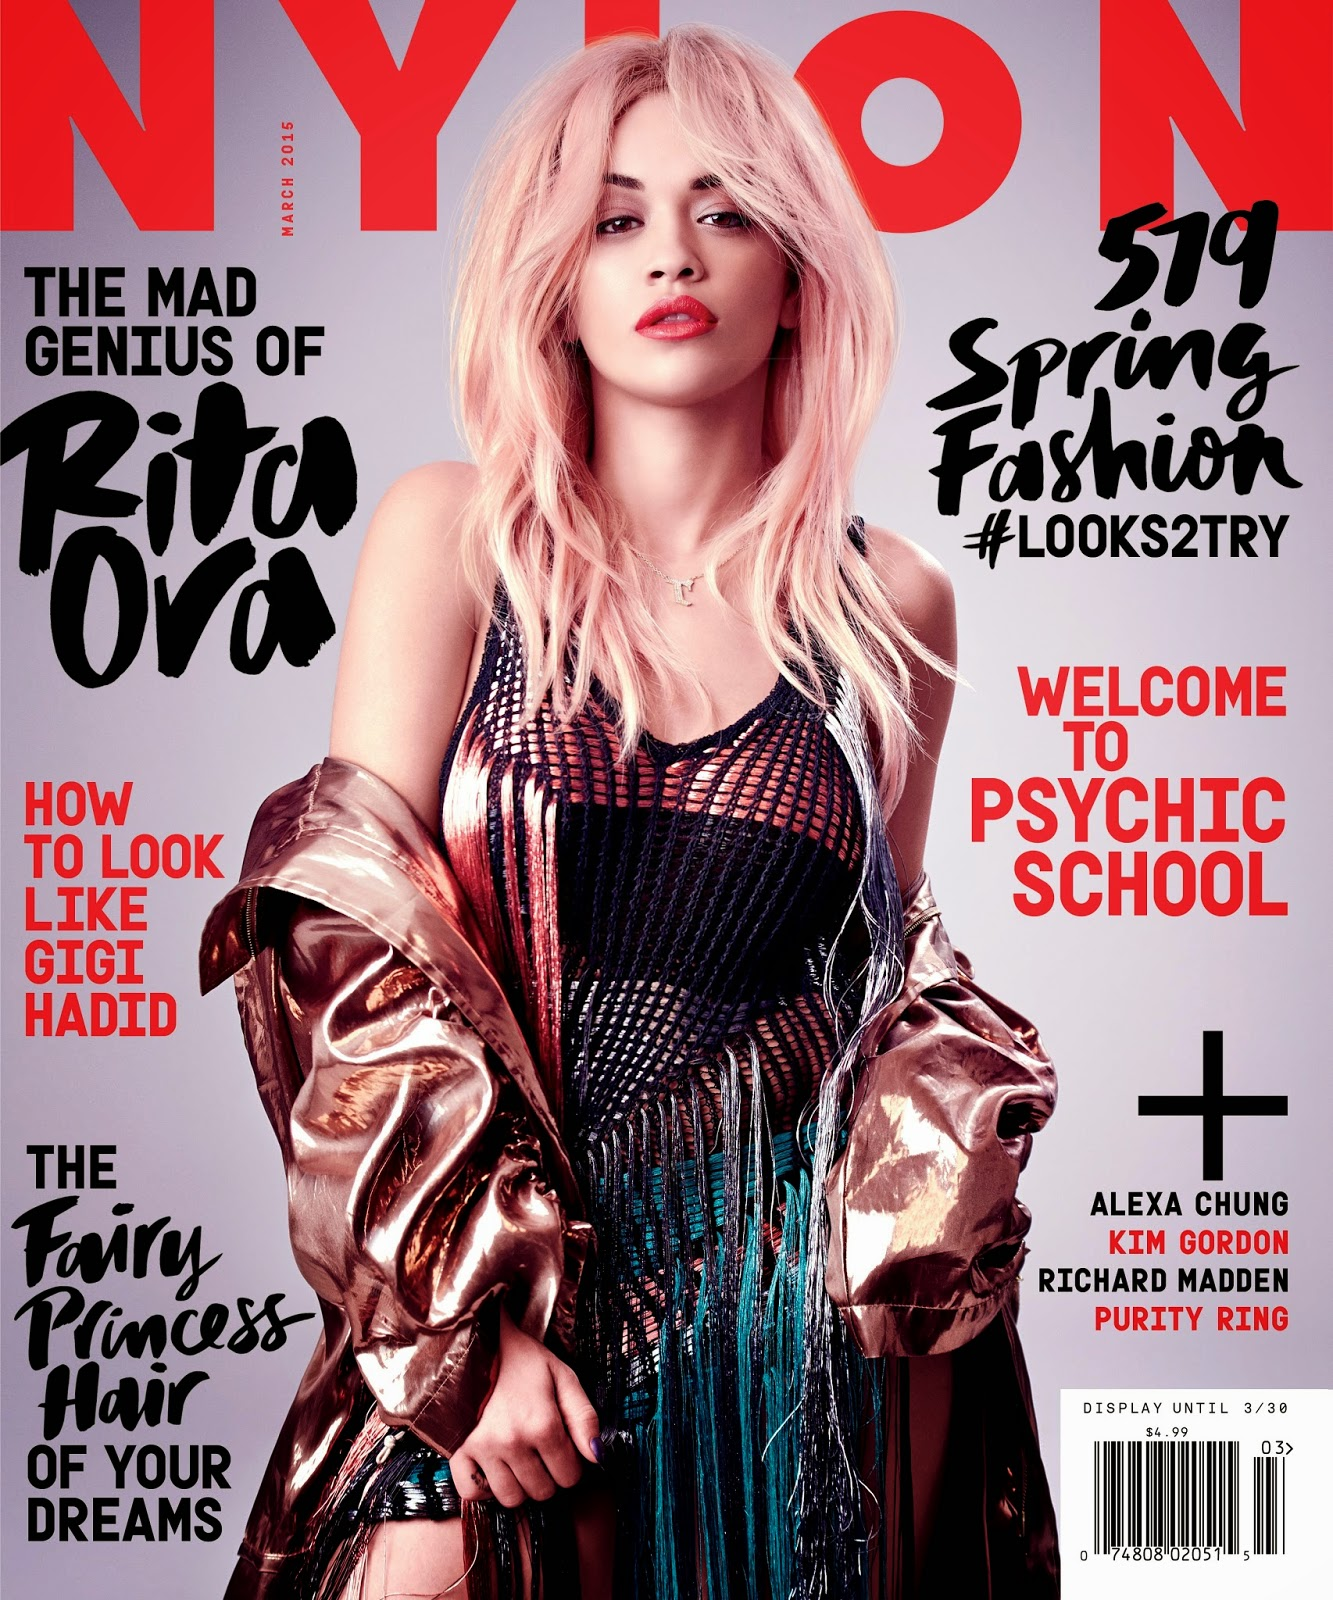 Pop , R&B , pop rock , soul , dance pop,Singer: Rita Ora for Nylon